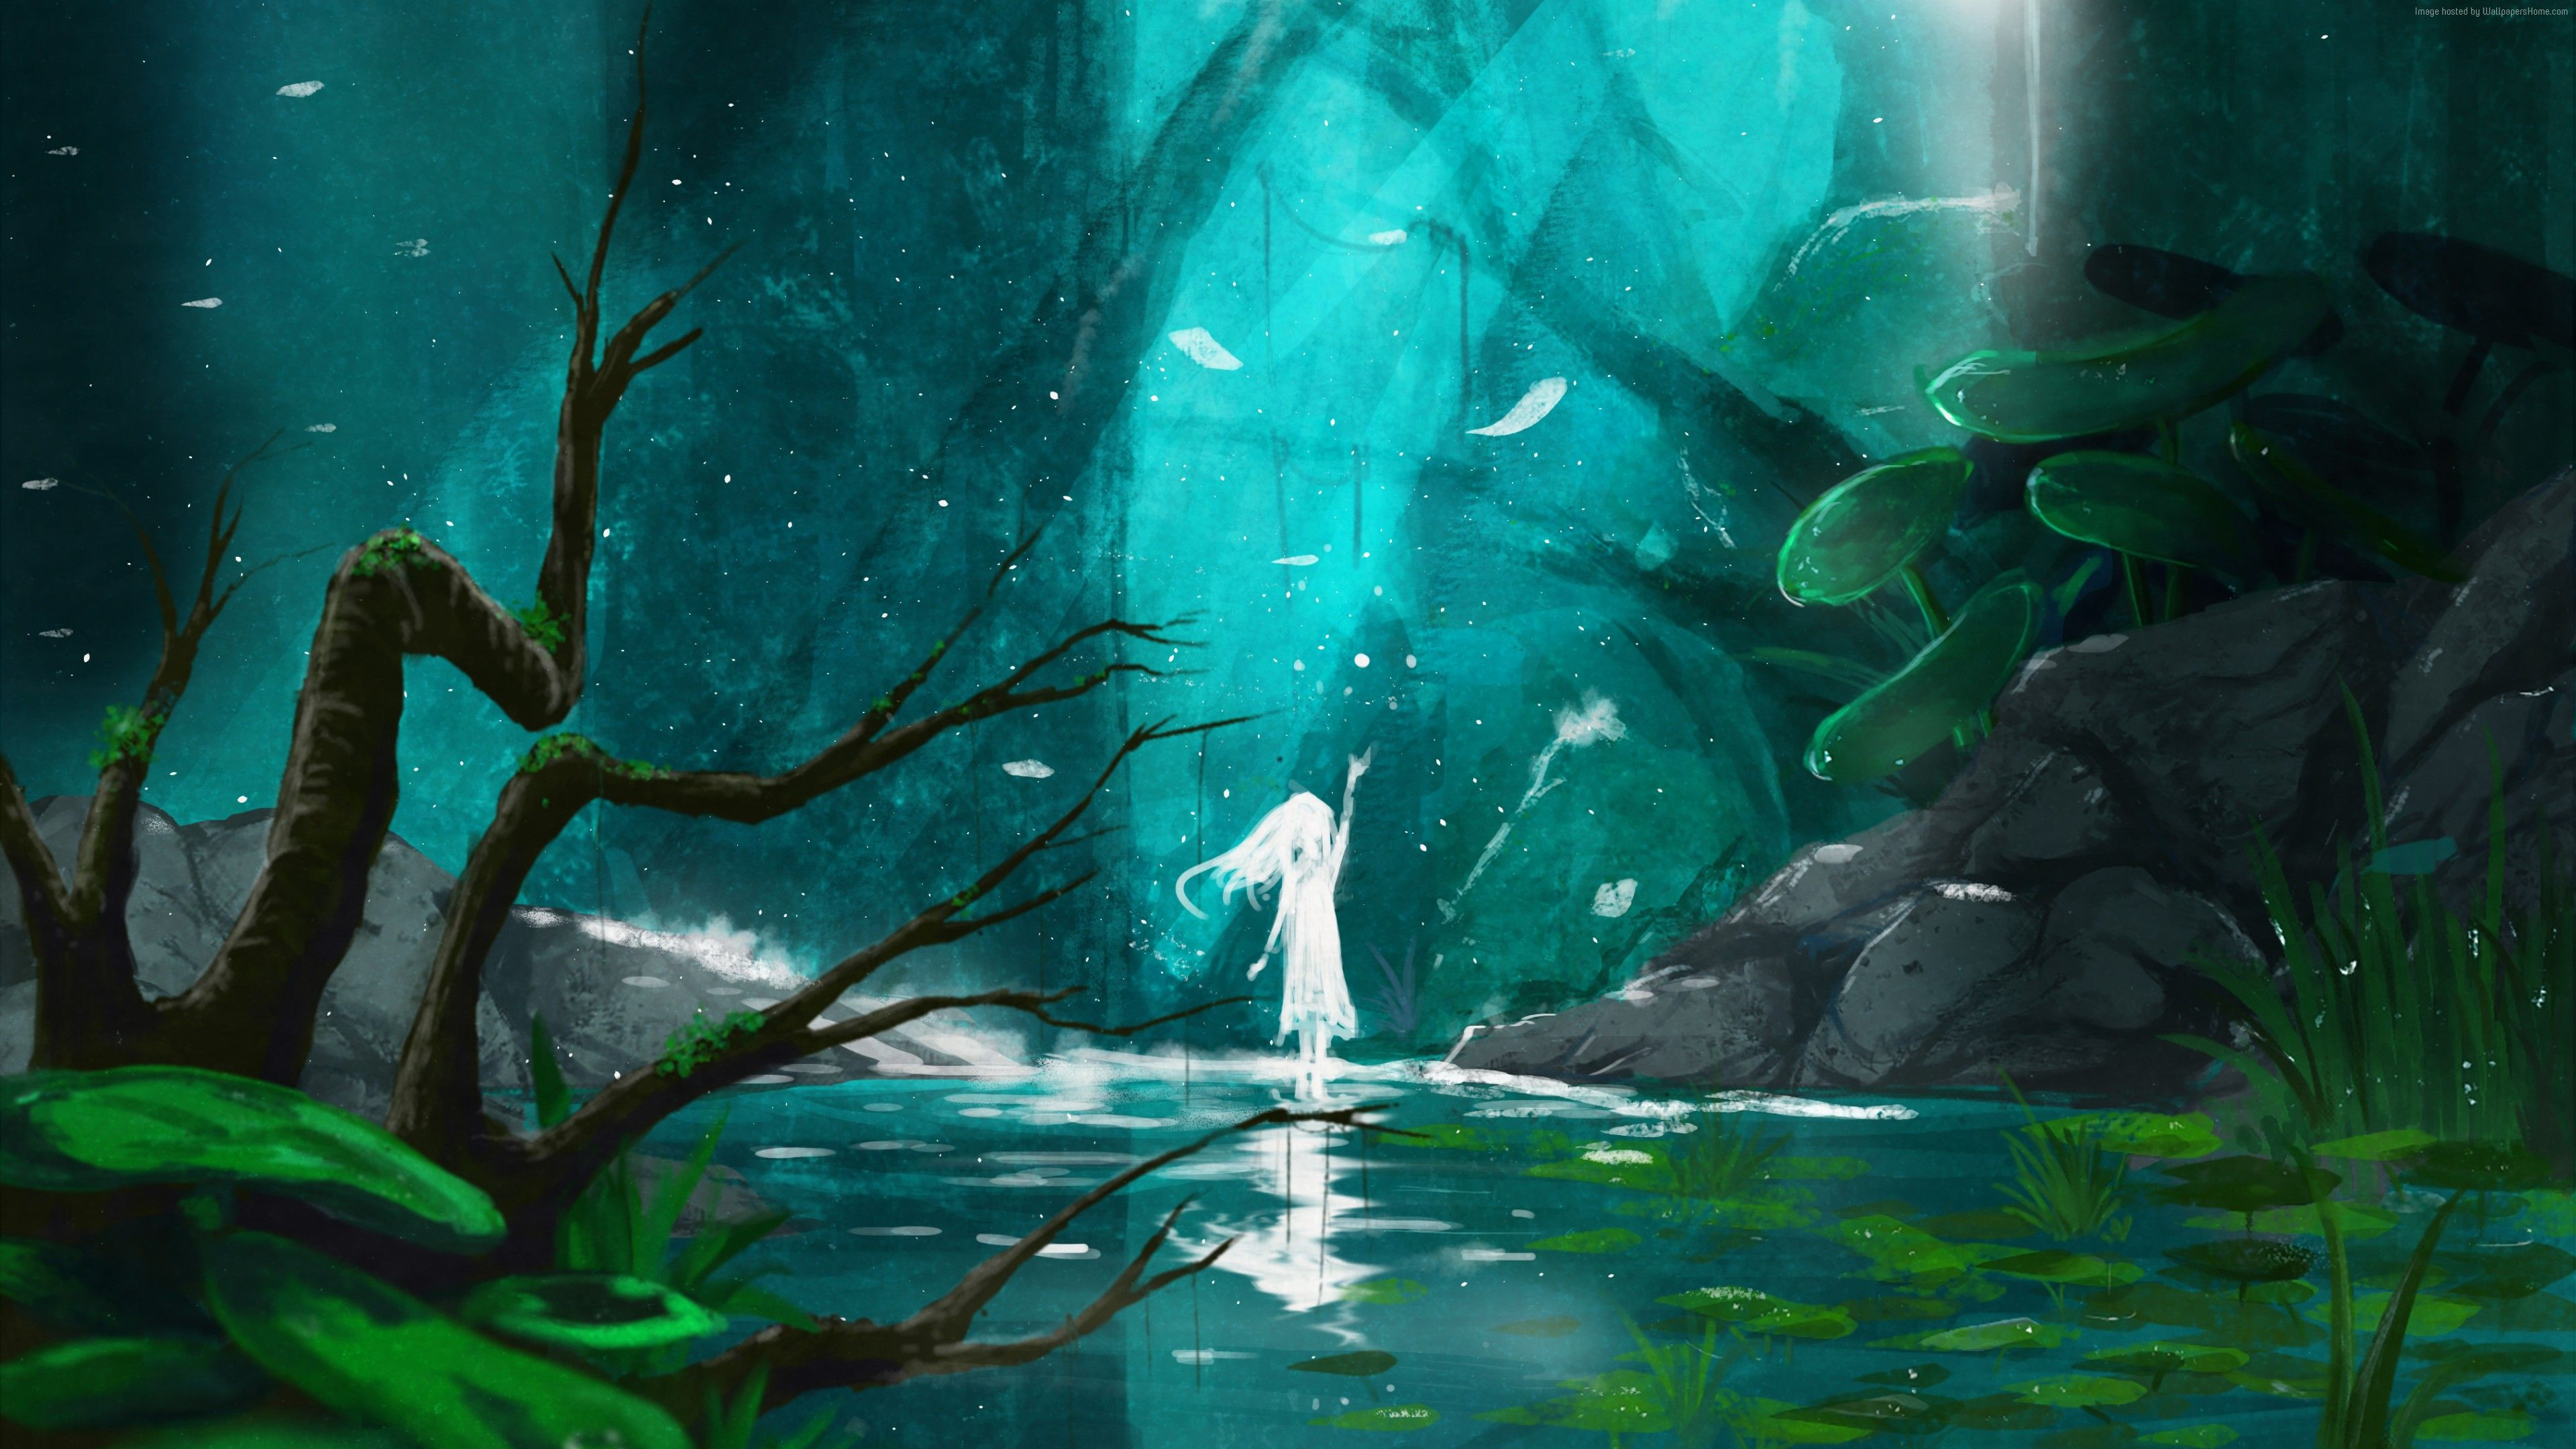 Pin By Jaime S On A Fantasy Forest Art Wallpaper Fantasy Paintings